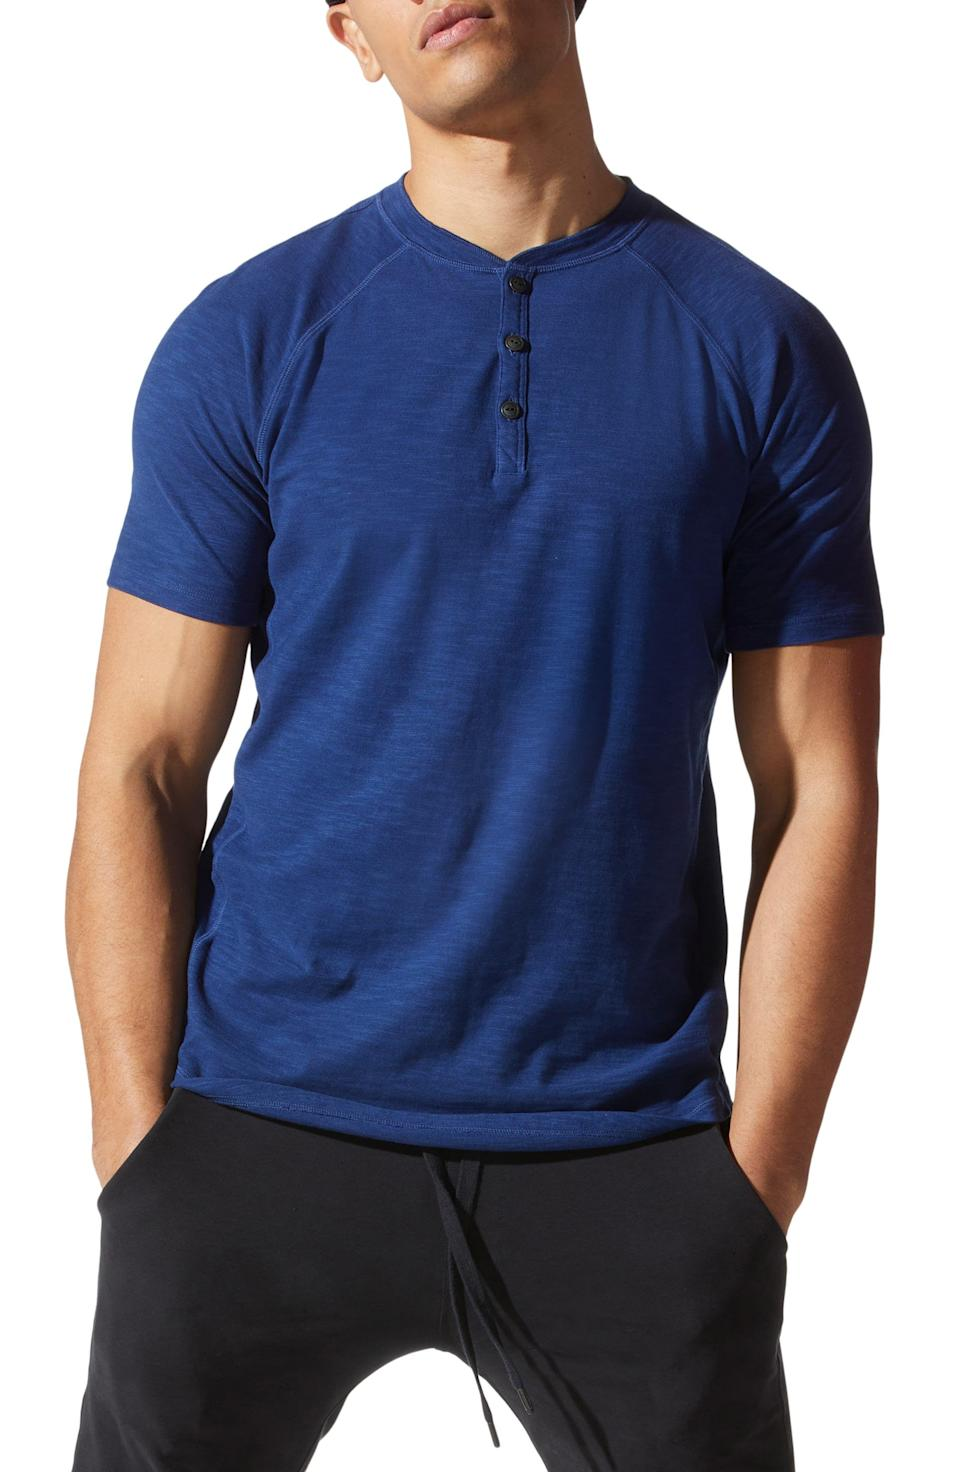 """<p><strong>Good Man Brand</strong></p><p>nordstrom.com</p><p><strong>$88.00</strong></p><p><a href=""""https://go.redirectingat.com?id=74968X1596630&url=https%3A%2F%2Fwww.nordstrom.com%2Fs%2Fgood-man-brand-legend-short-sleeve-slubbed-henley%2F5649129&sref=https%3A%2F%2Fwww.womansday.com%2Flife%2Fg964%2Fgifts-for-men%2F"""" rel=""""nofollow noopener"""" target=""""_blank"""" data-ylk=""""slk:Shop Now"""" class=""""link rapid-noclick-resp"""">Shop Now</a></p><p>You can't go wrong with a super soft henley tee, which fits like a dream and comes in blue, topaz, and watermelon color options.</p>"""